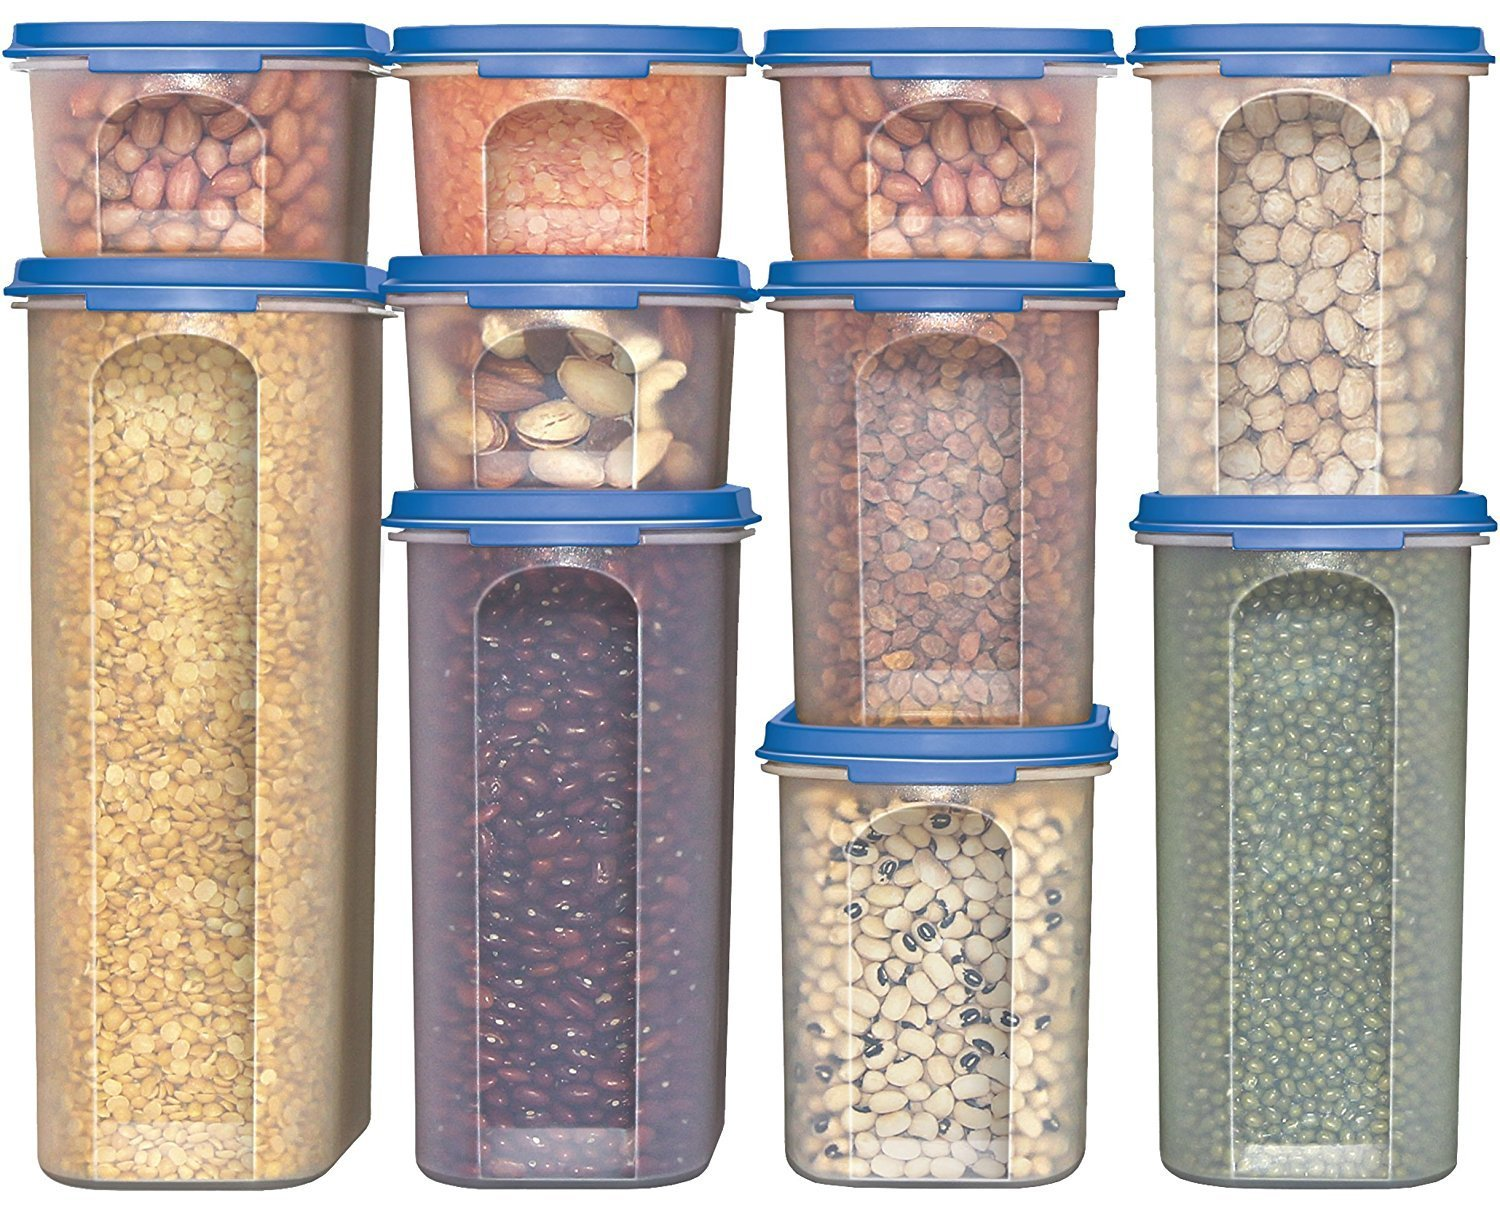 Ordinaire Food Storage Containers  STACKO  20 PC.   Airtight Dry Food Container With  Lids (10 Container Set) Milton SYNCHKG112173